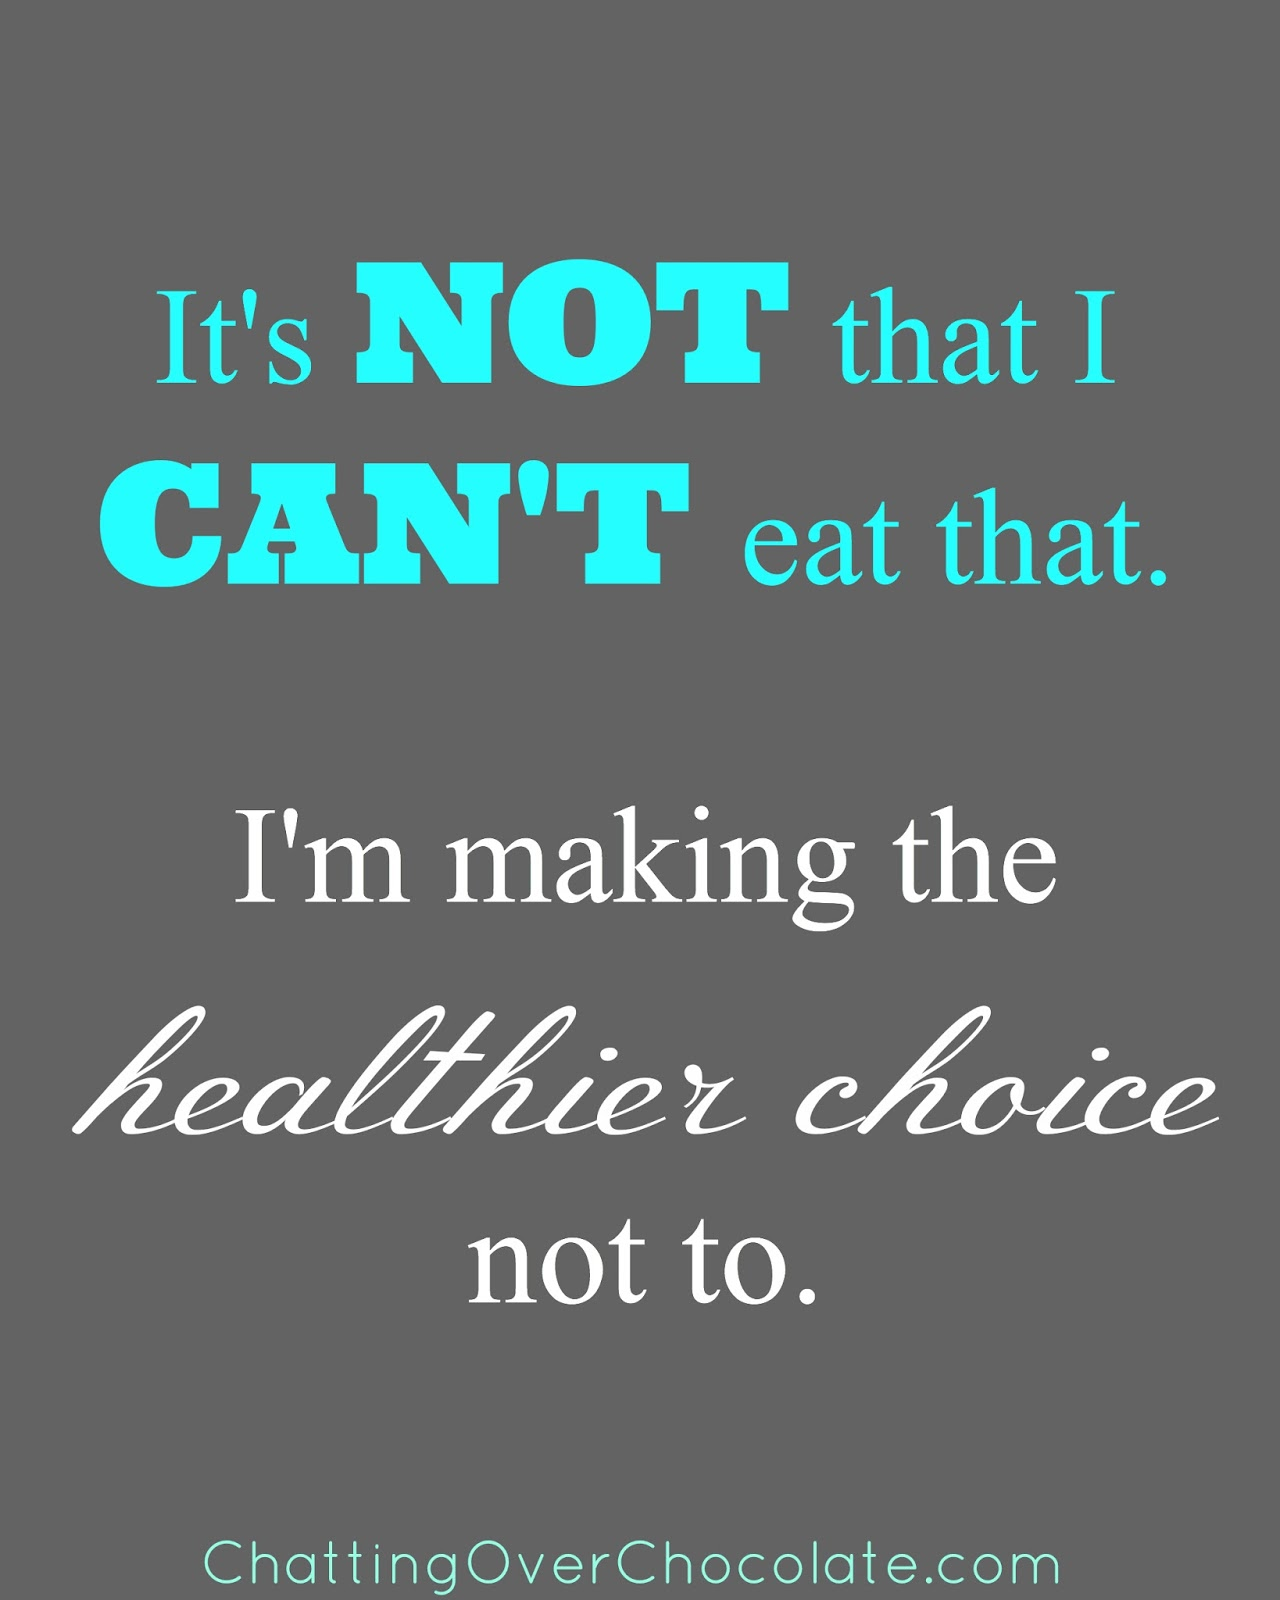 How to Make Healthy Choices in the School Cafeteria How to Make Healthy Choices in the School Cafeteria new picture